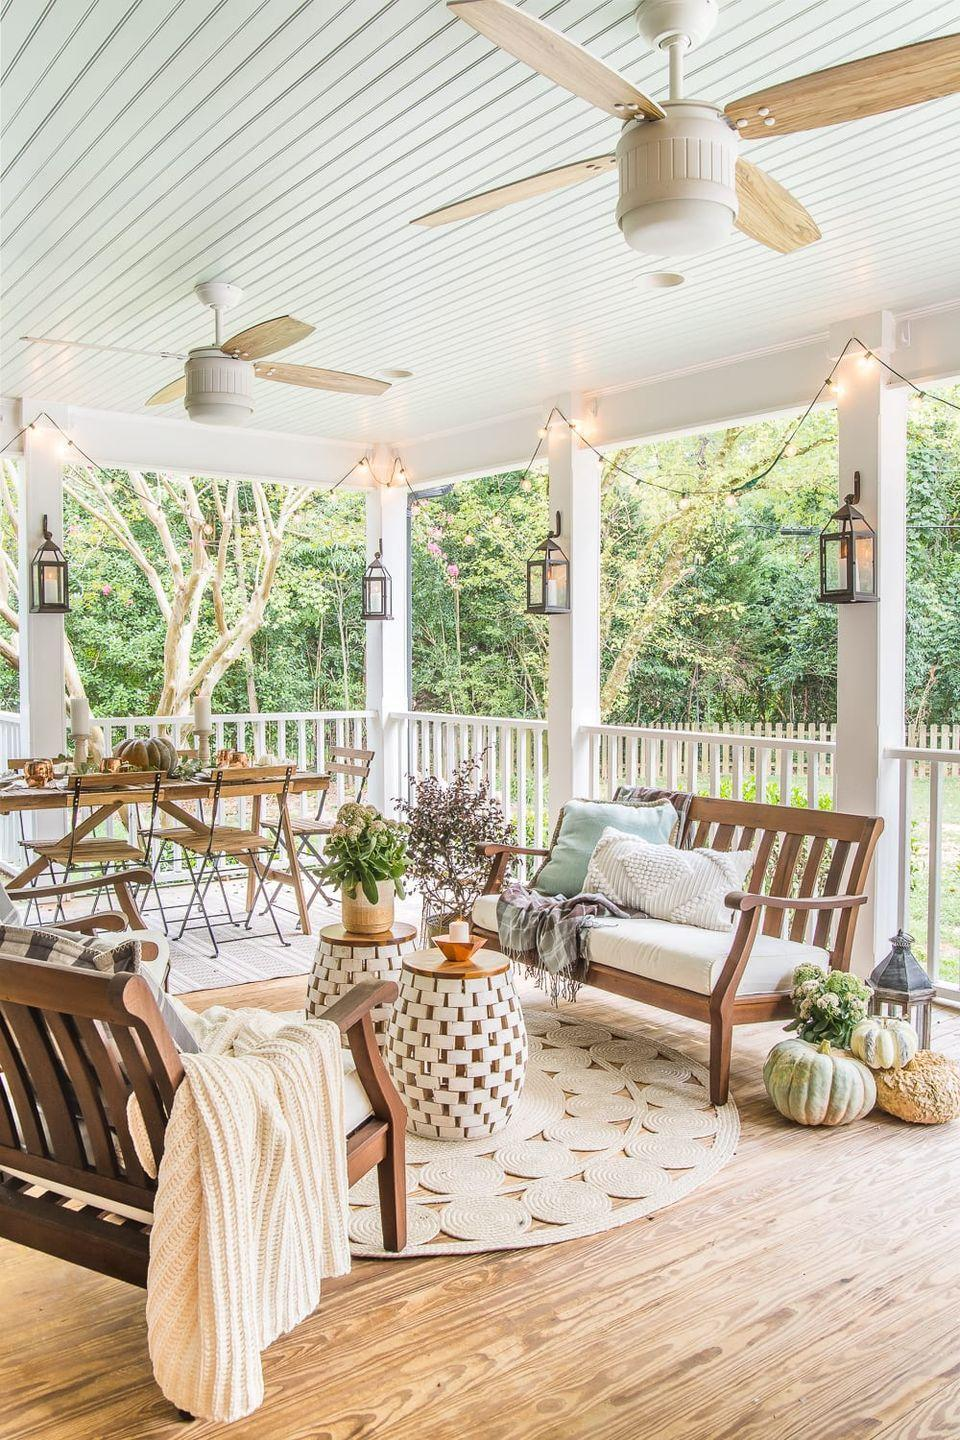 """<p>If you want to make a nod to the season without letting your outdoor pumpkin decorations take over your space, this cozy porch will give you the inspo you need. </p><p><strong>See more at <a href=""""https://www.blesserhouse.com/fall-back-porch-capsule-decor/"""" rel=""""nofollow noopener"""" target=""""_blank"""" data-ylk=""""slk:Bless'er House"""" class=""""link rapid-noclick-resp"""">Bless'er House</a>. </strong></p><p><a class=""""link rapid-noclick-resp"""" href=""""https://www.amazon.com/Barefoot-Dreams-Contrast-Throw-Blanket/dp/B01BLUR2WG?tag=syn-yahoo-20&ascsubtag=%5Bartid%7C2164.g.36877187%5Bsrc%7Cyahoo-us"""" rel=""""nofollow noopener"""" target=""""_blank"""" data-ylk=""""slk:SHOP COZY BLANKETS"""">SHOP COZY BLANKETS</a></p>"""